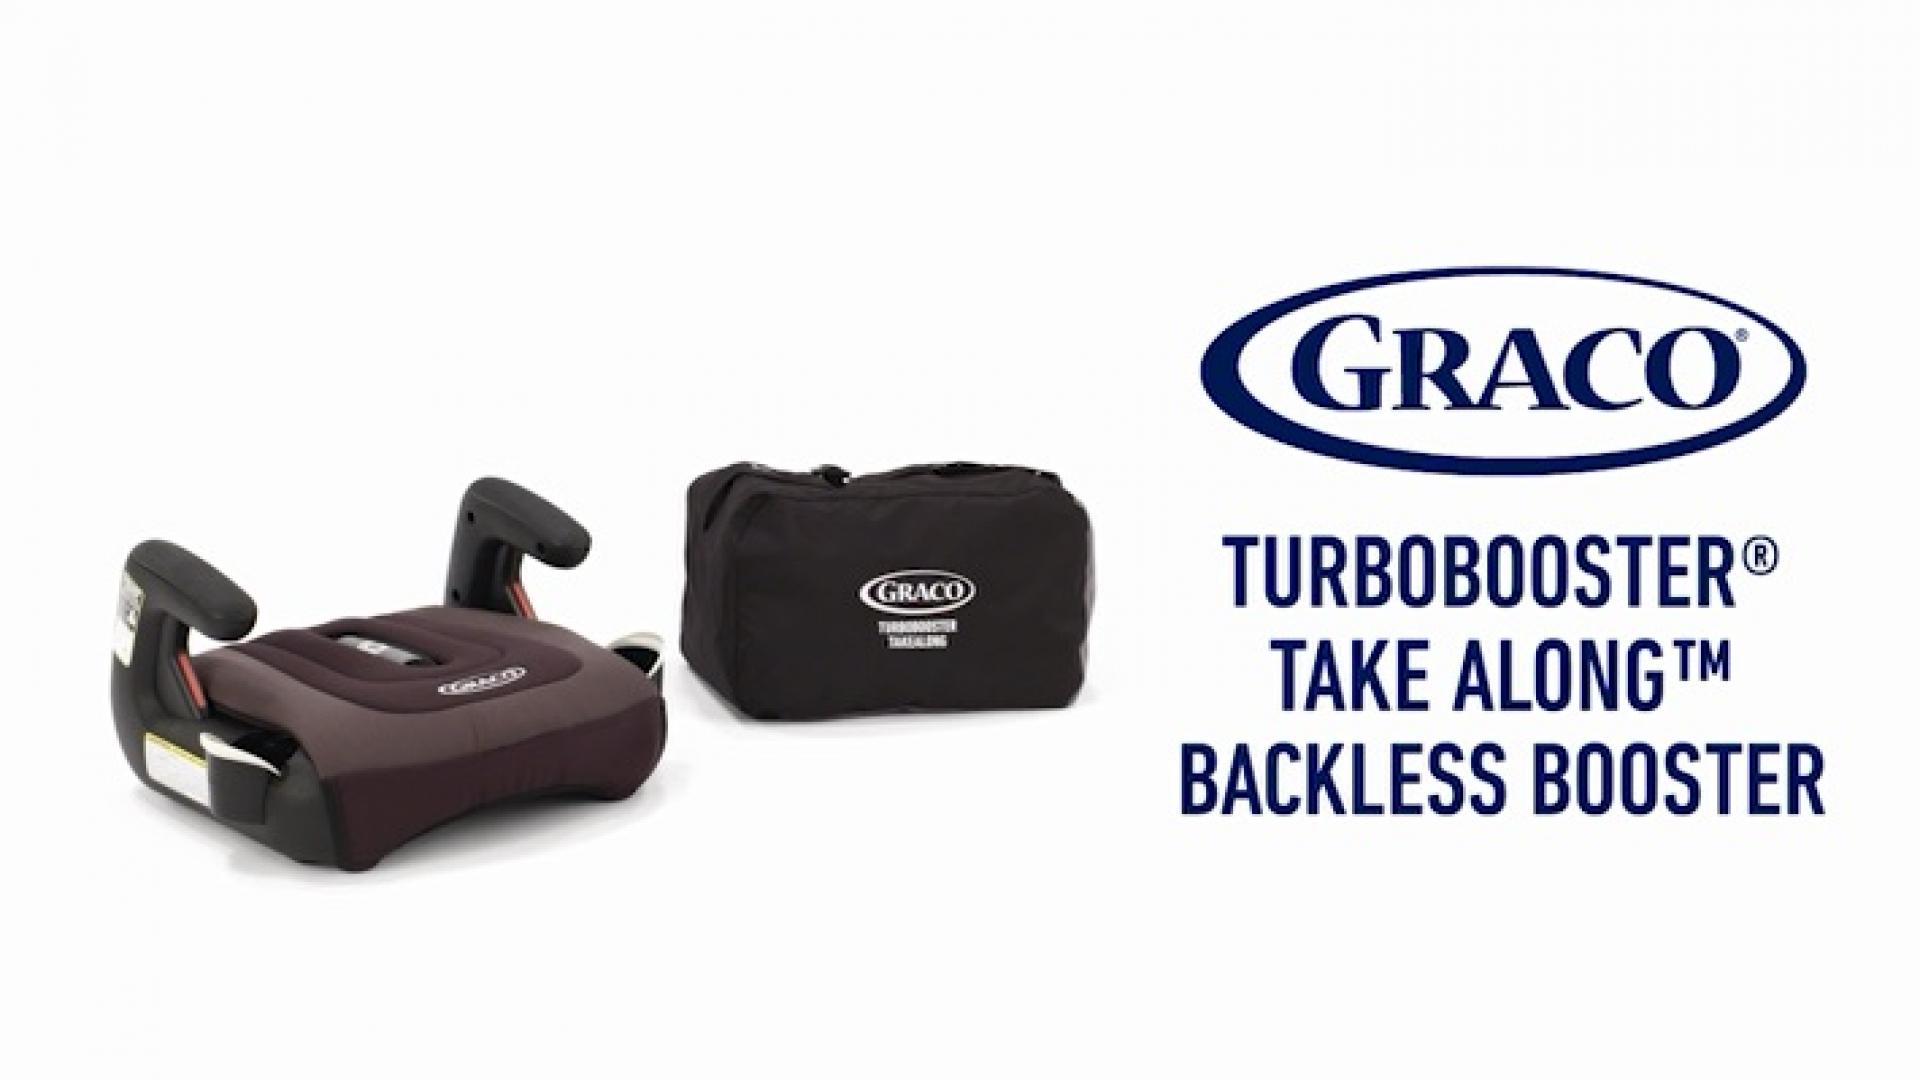 Graco TurboBooster TakeAlong Backless Booster